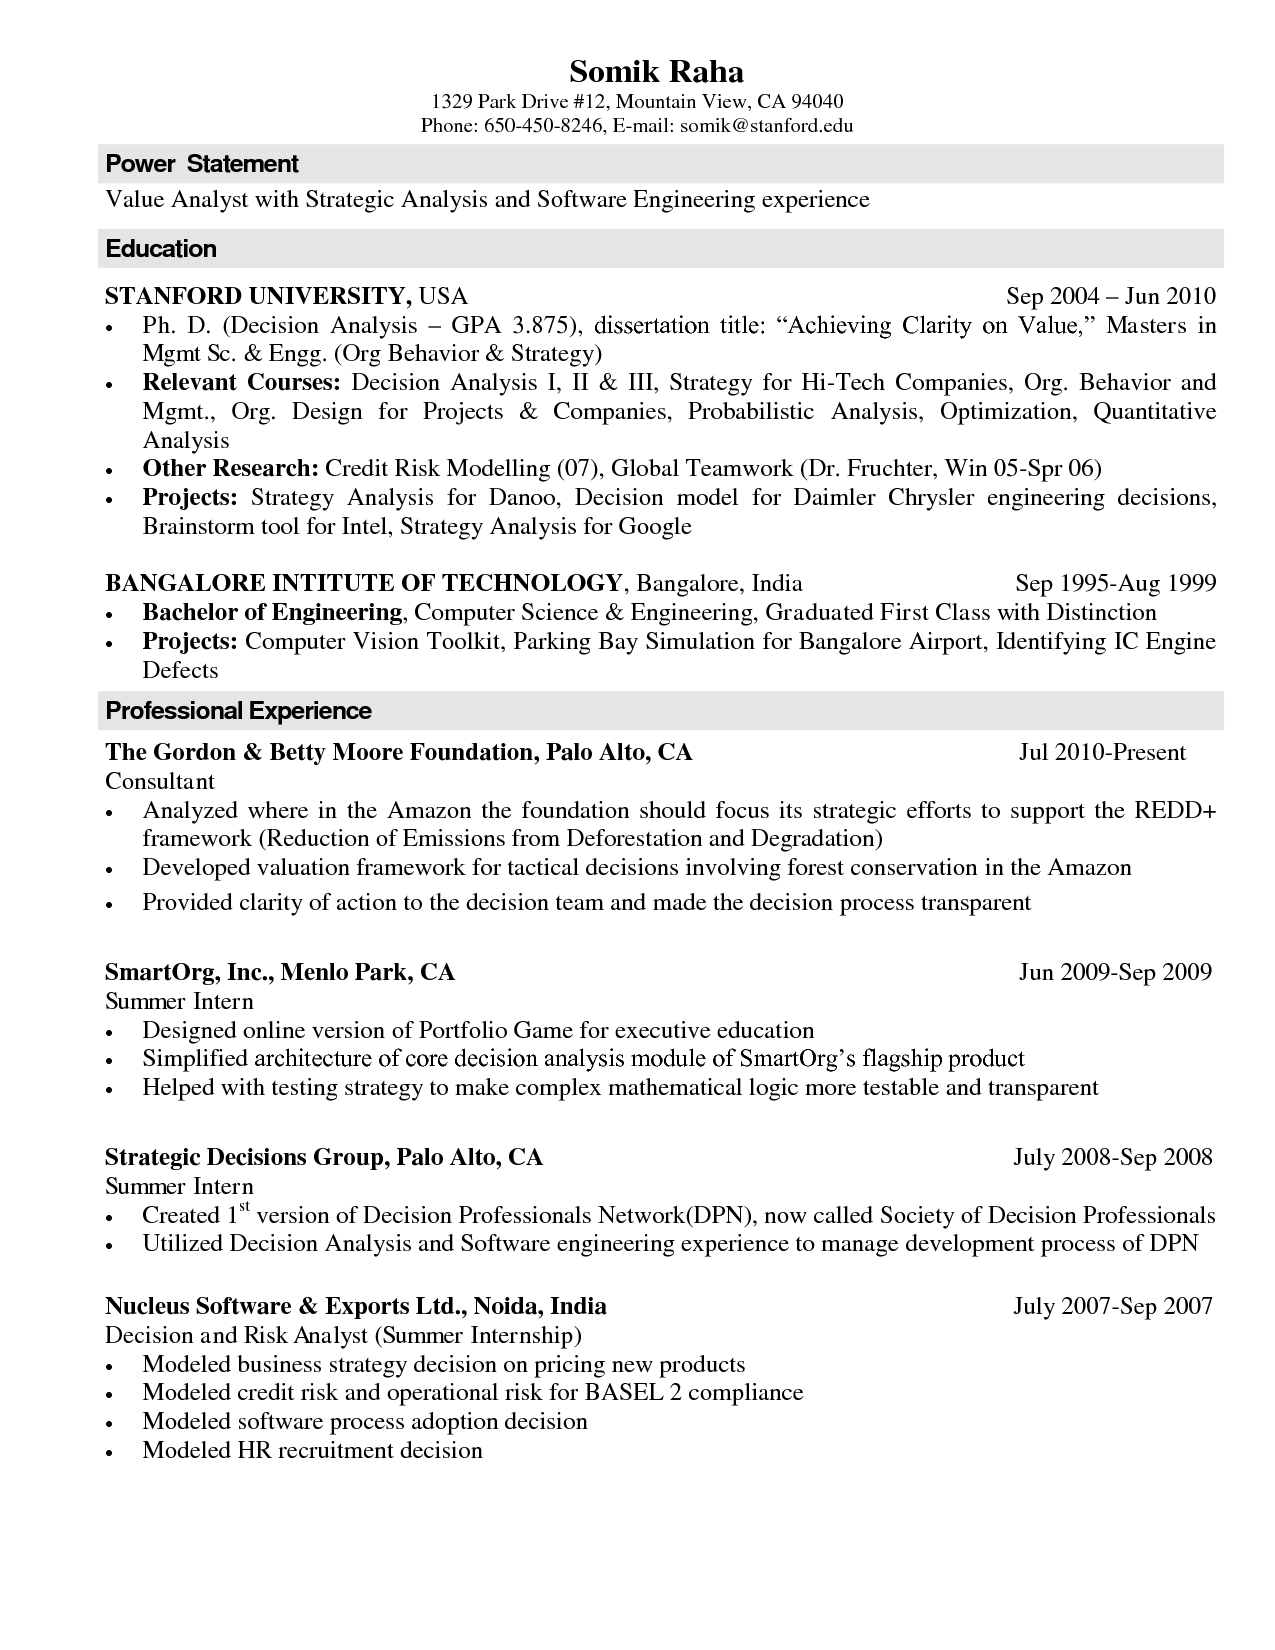 Engineering Resume Templates Computer Science Resume Templates  Httpwwwresumecareer